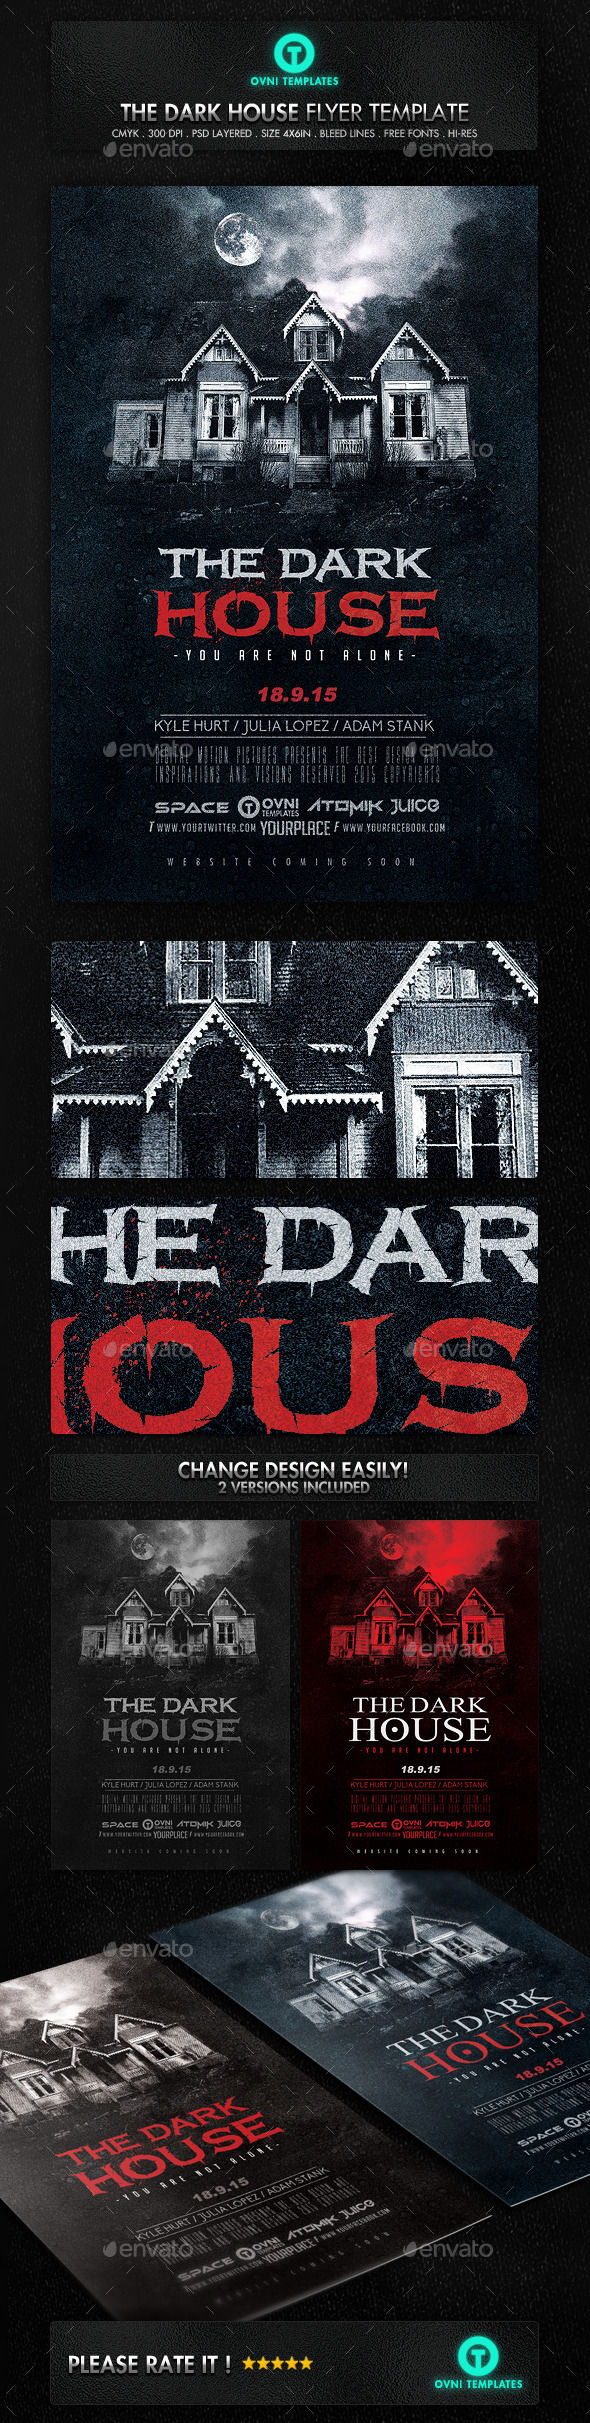 Dark Terror House Flyer Movie Poster by OVNI-TEMPLATES (Halloween party flyer)